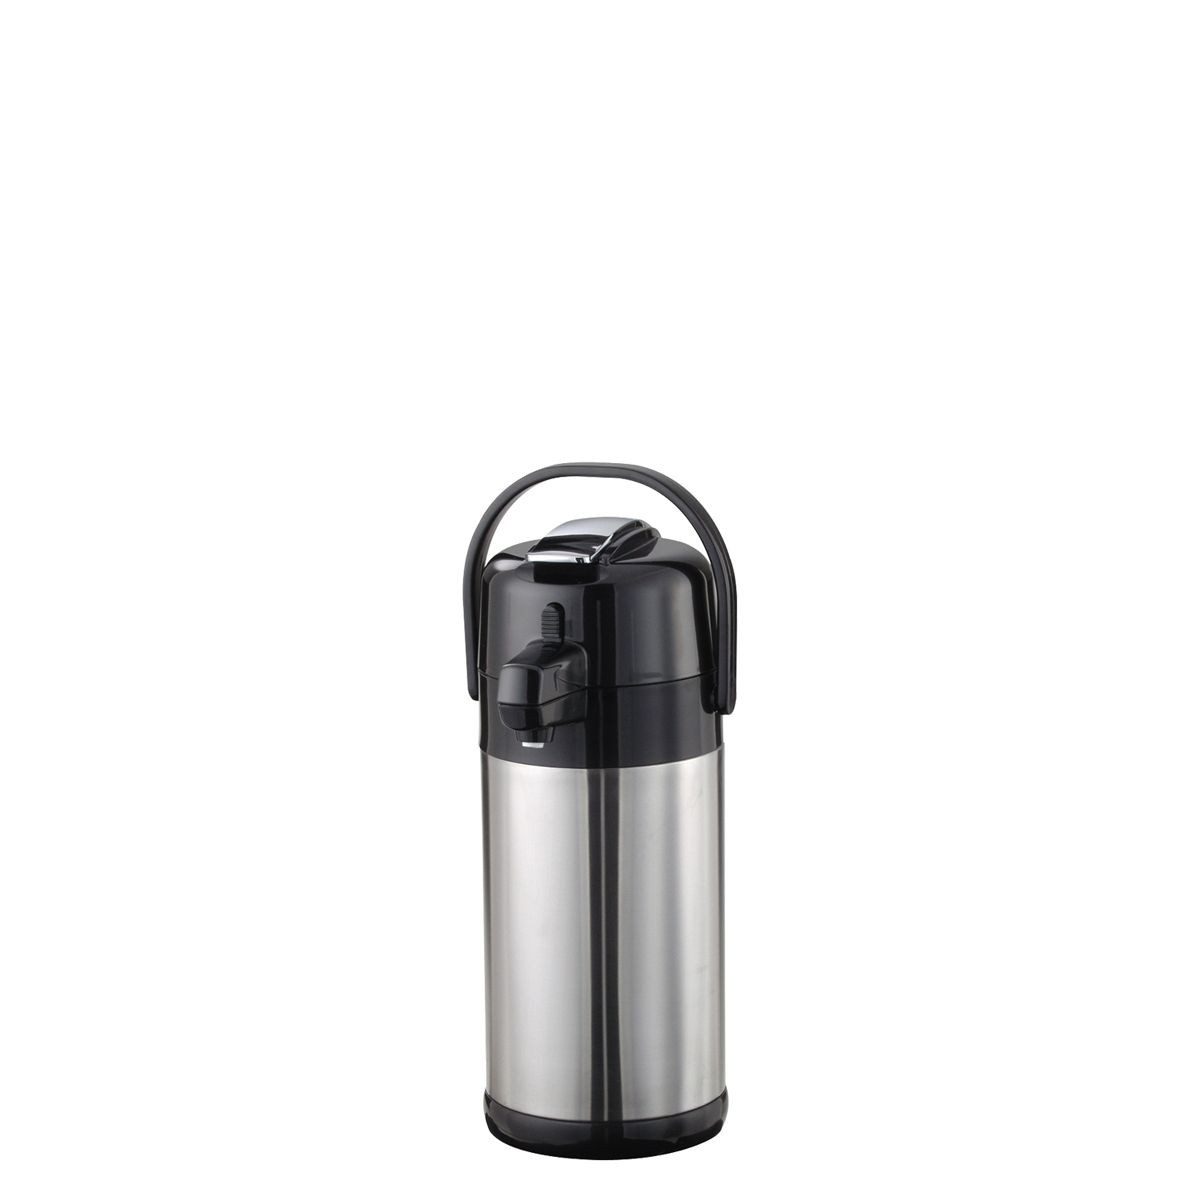 Service Ideas SECAL22S Airpot with Interchangeable Lever Lid, 2.2 Liter